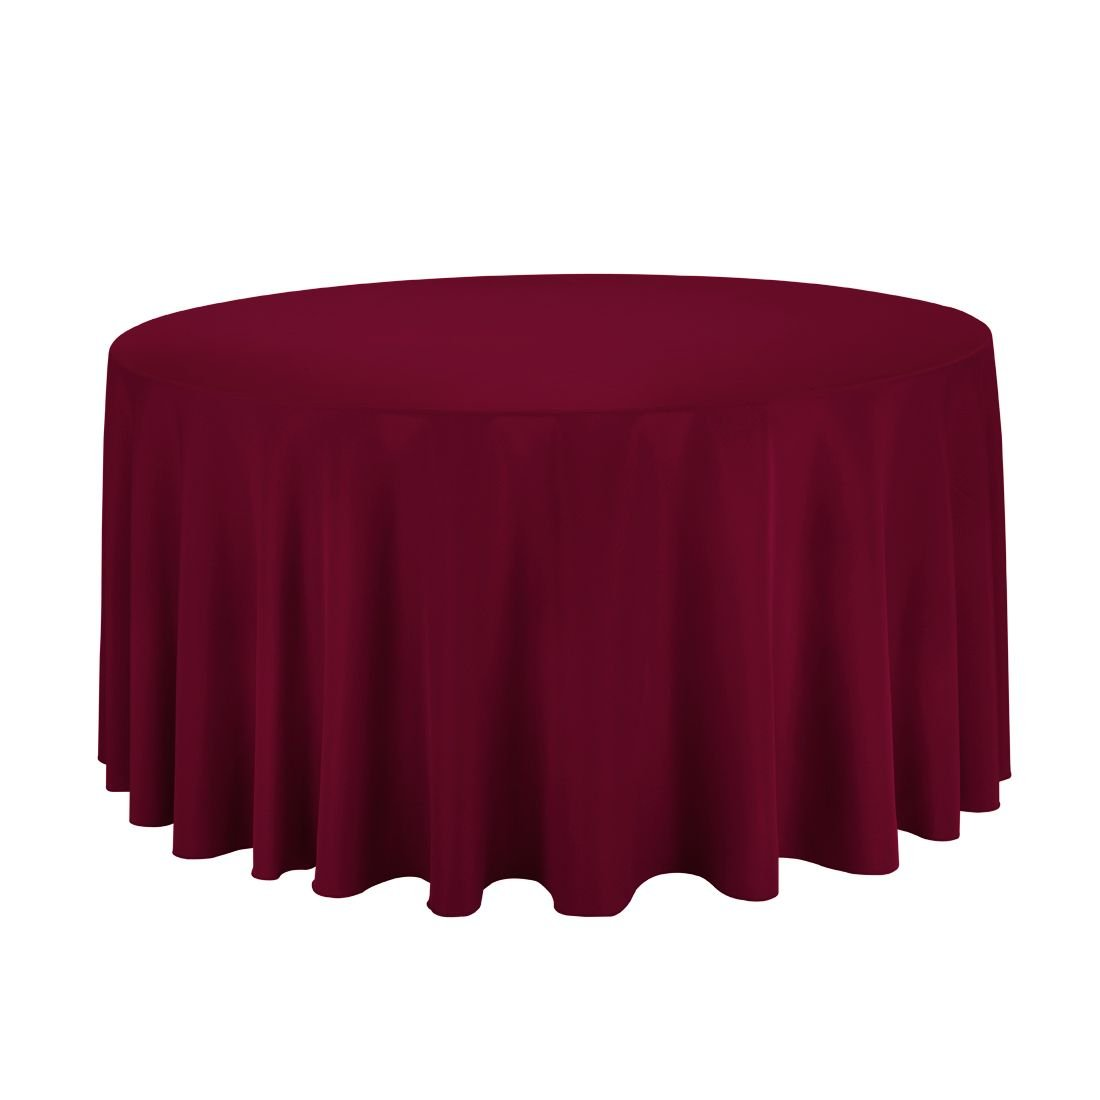 Gee Di Moda Tablecloth - 120'' Inch Round Tablecloths for Circular Table Cover in Burgundy Washable Polyester - Great for Buffet Table, Parties, Holiday Dinner & More